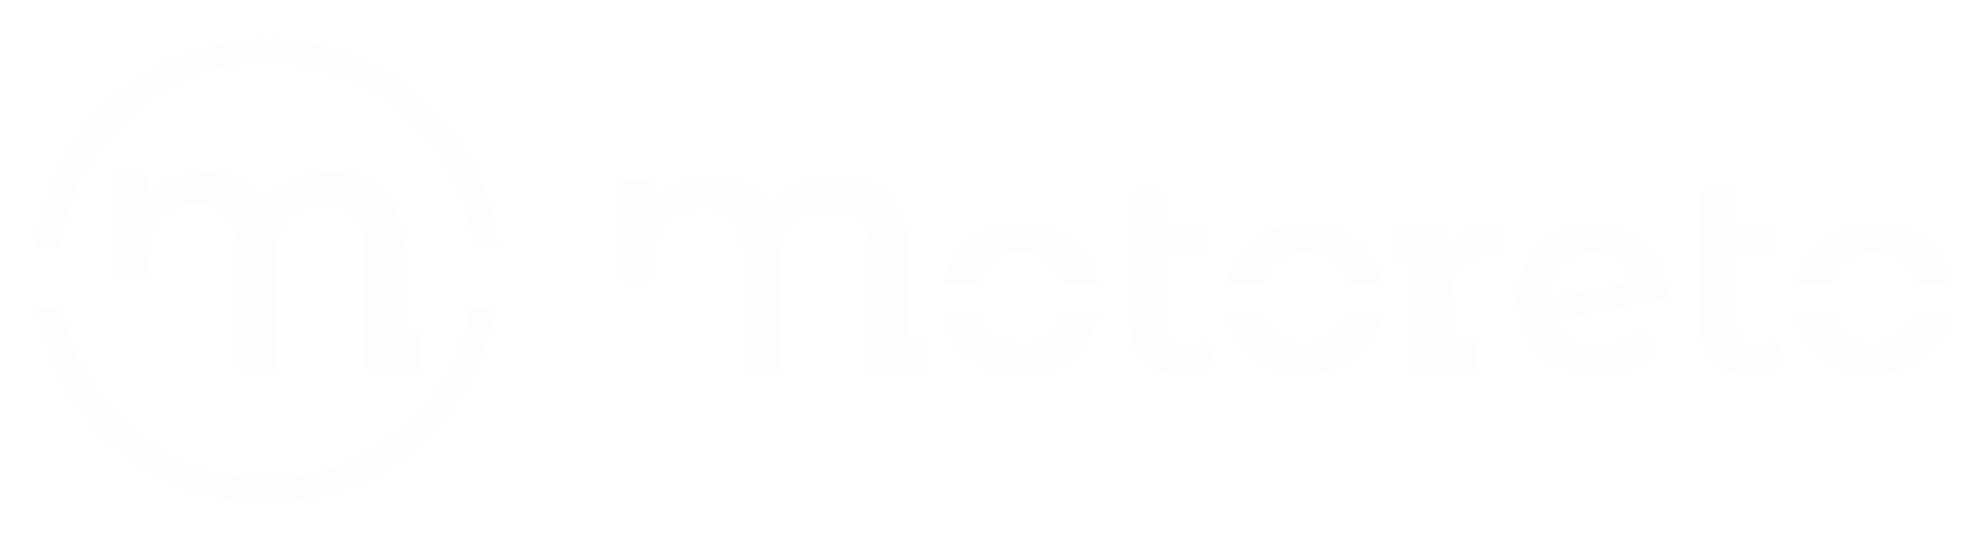 Motoreto Corporate SL